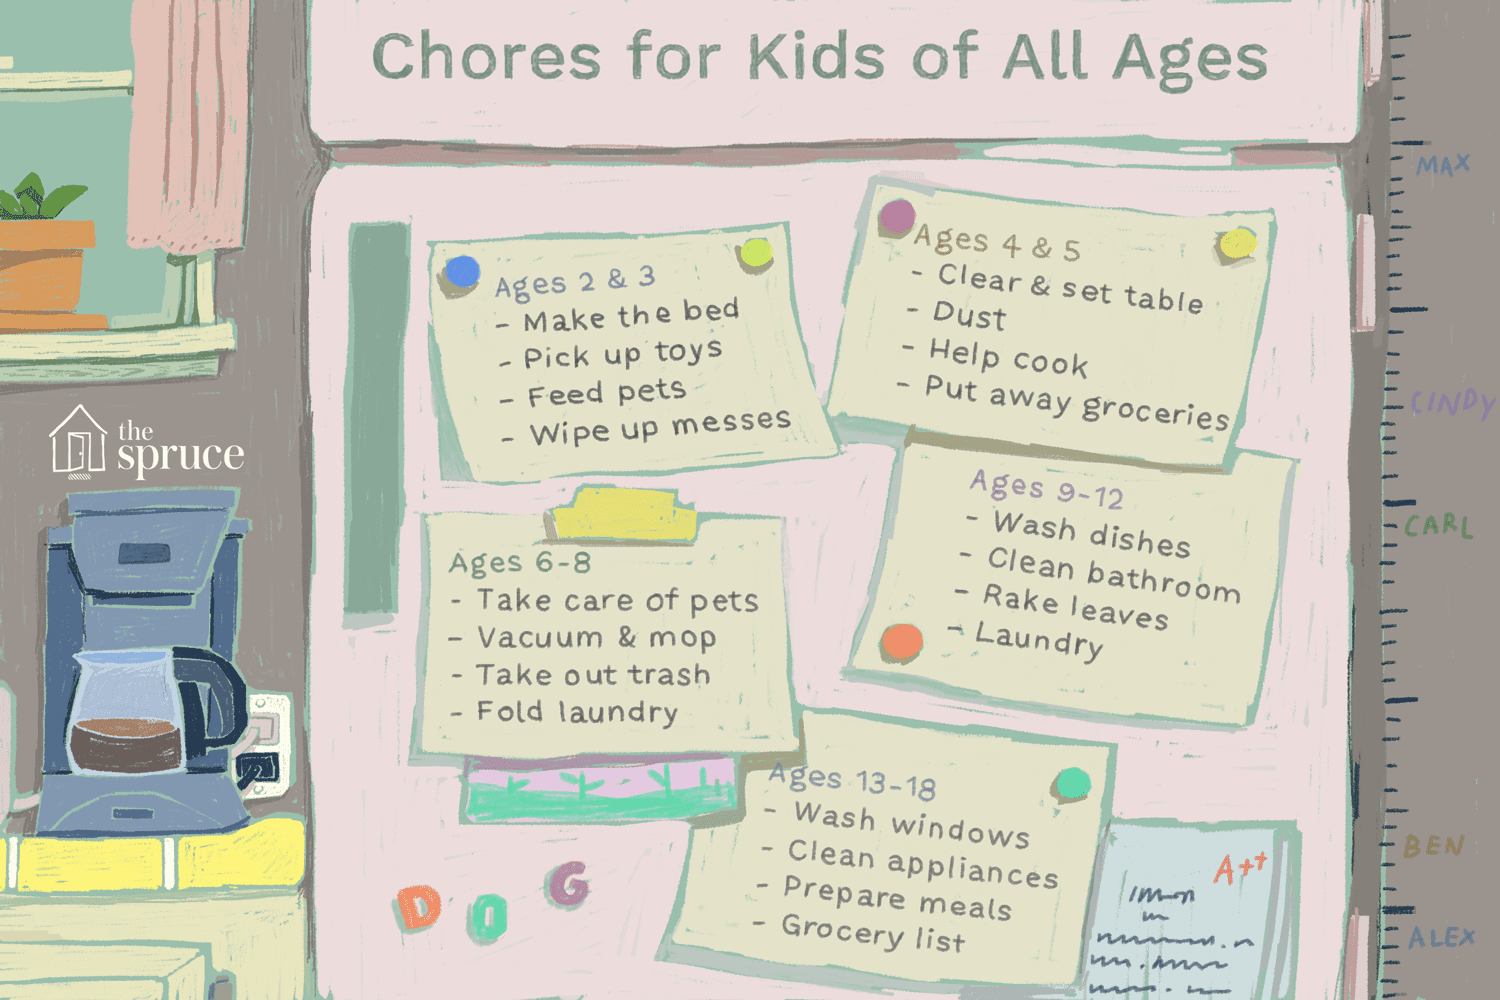 A List of Age Appropriate Chores for Kids 2-18